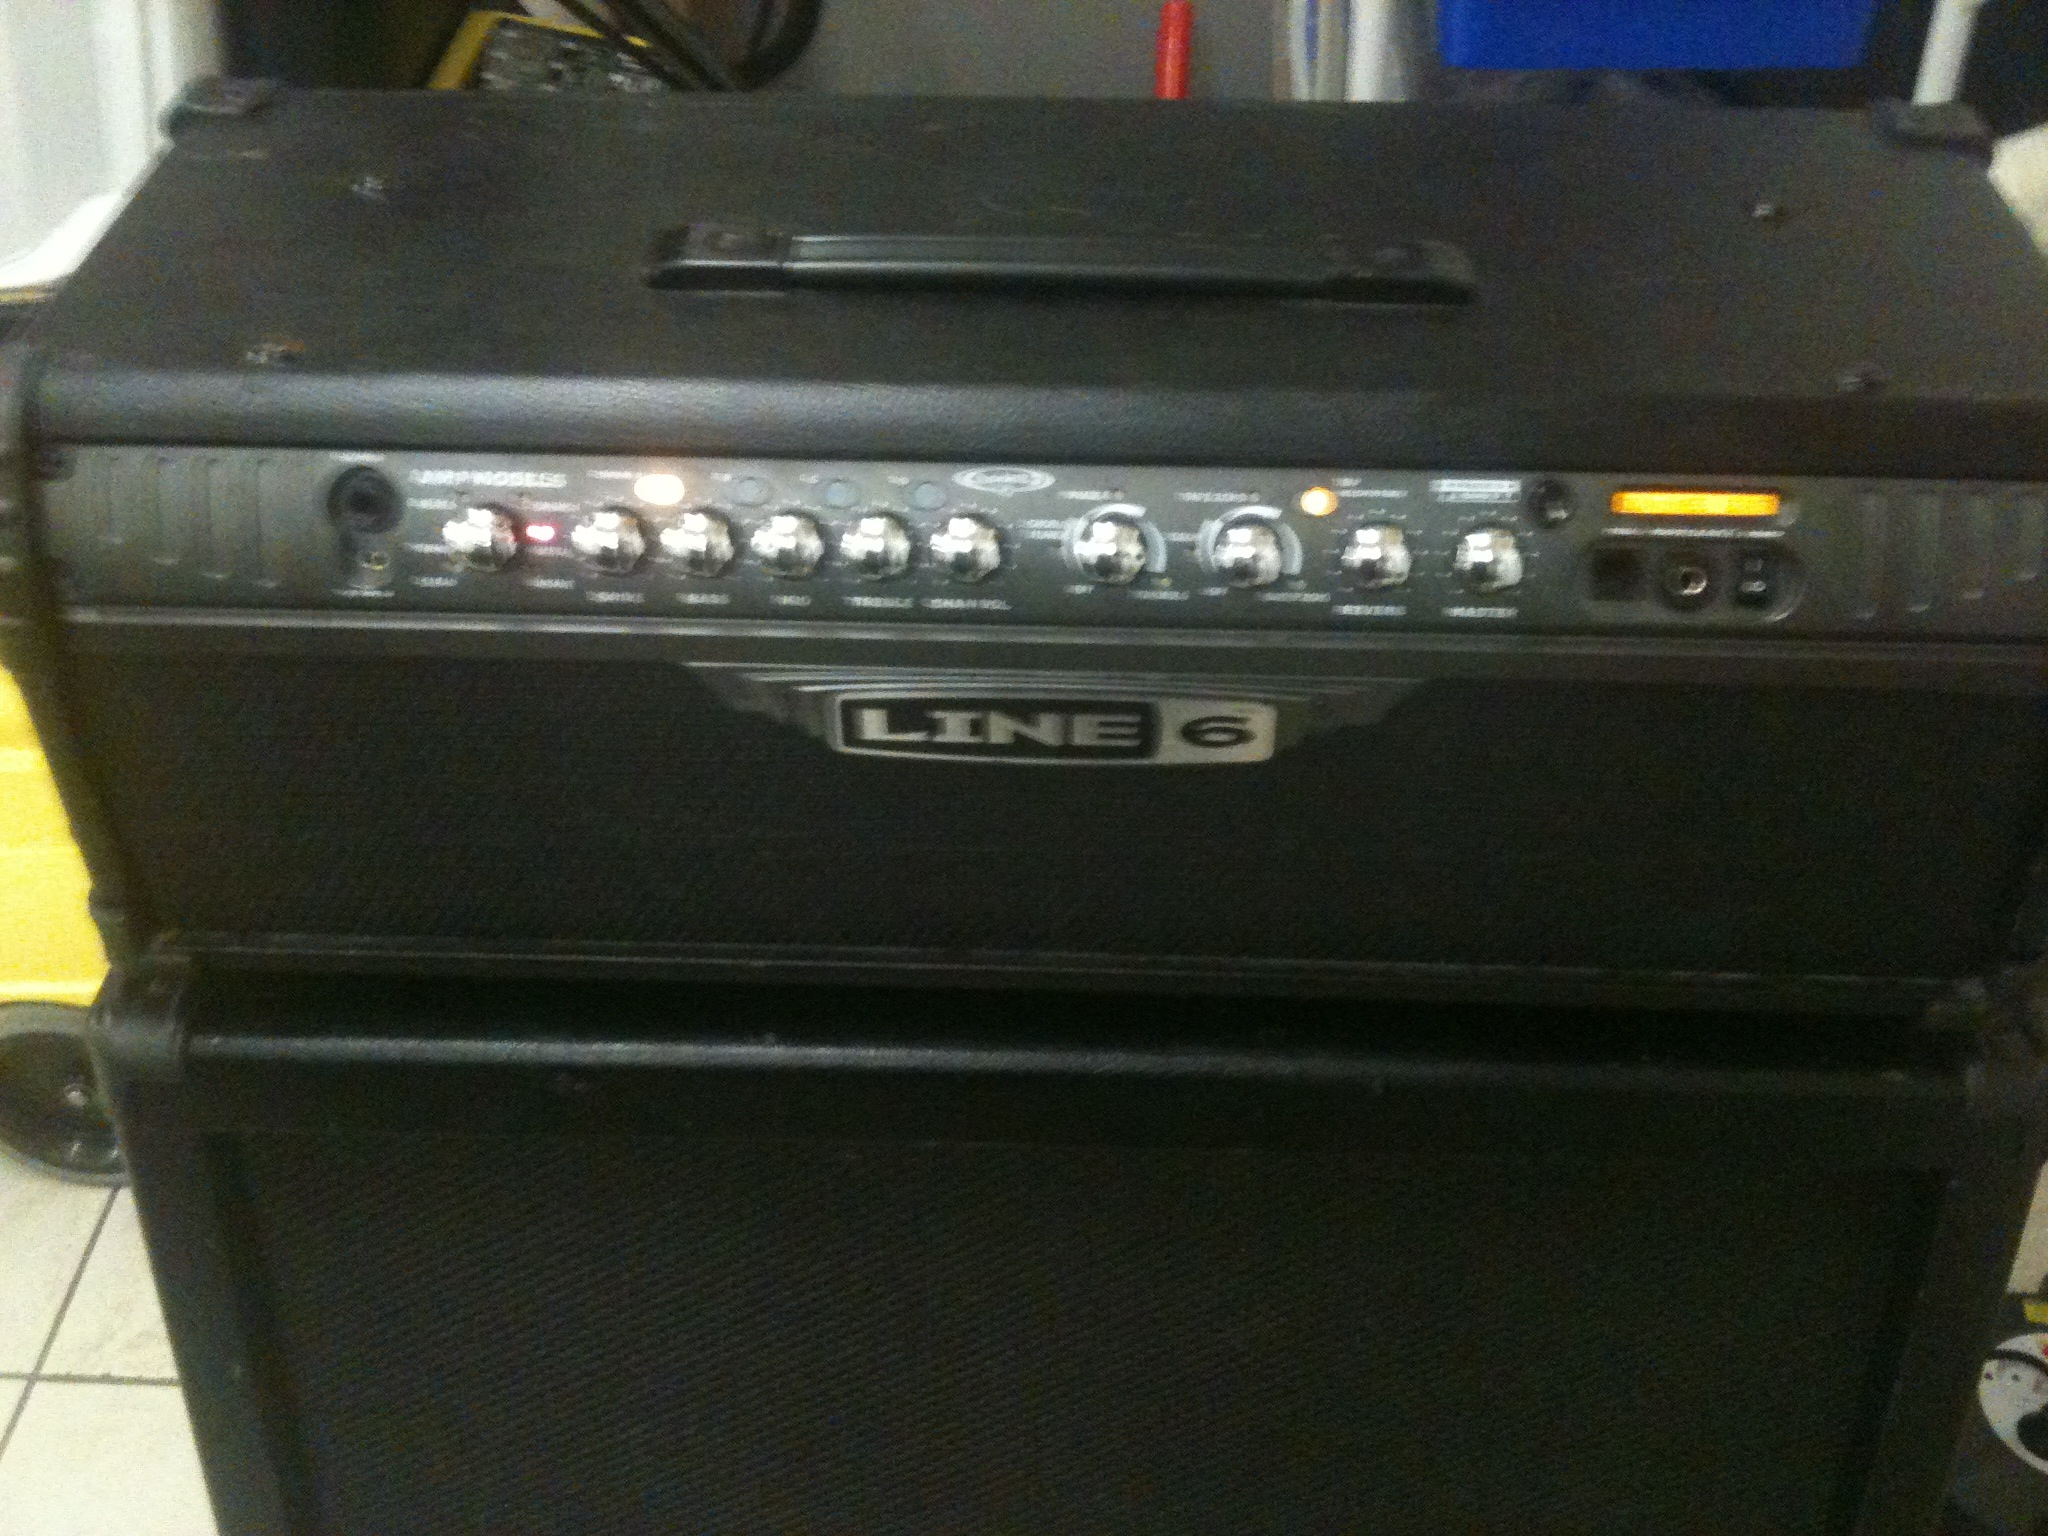 line 6 spider iii 150 manual